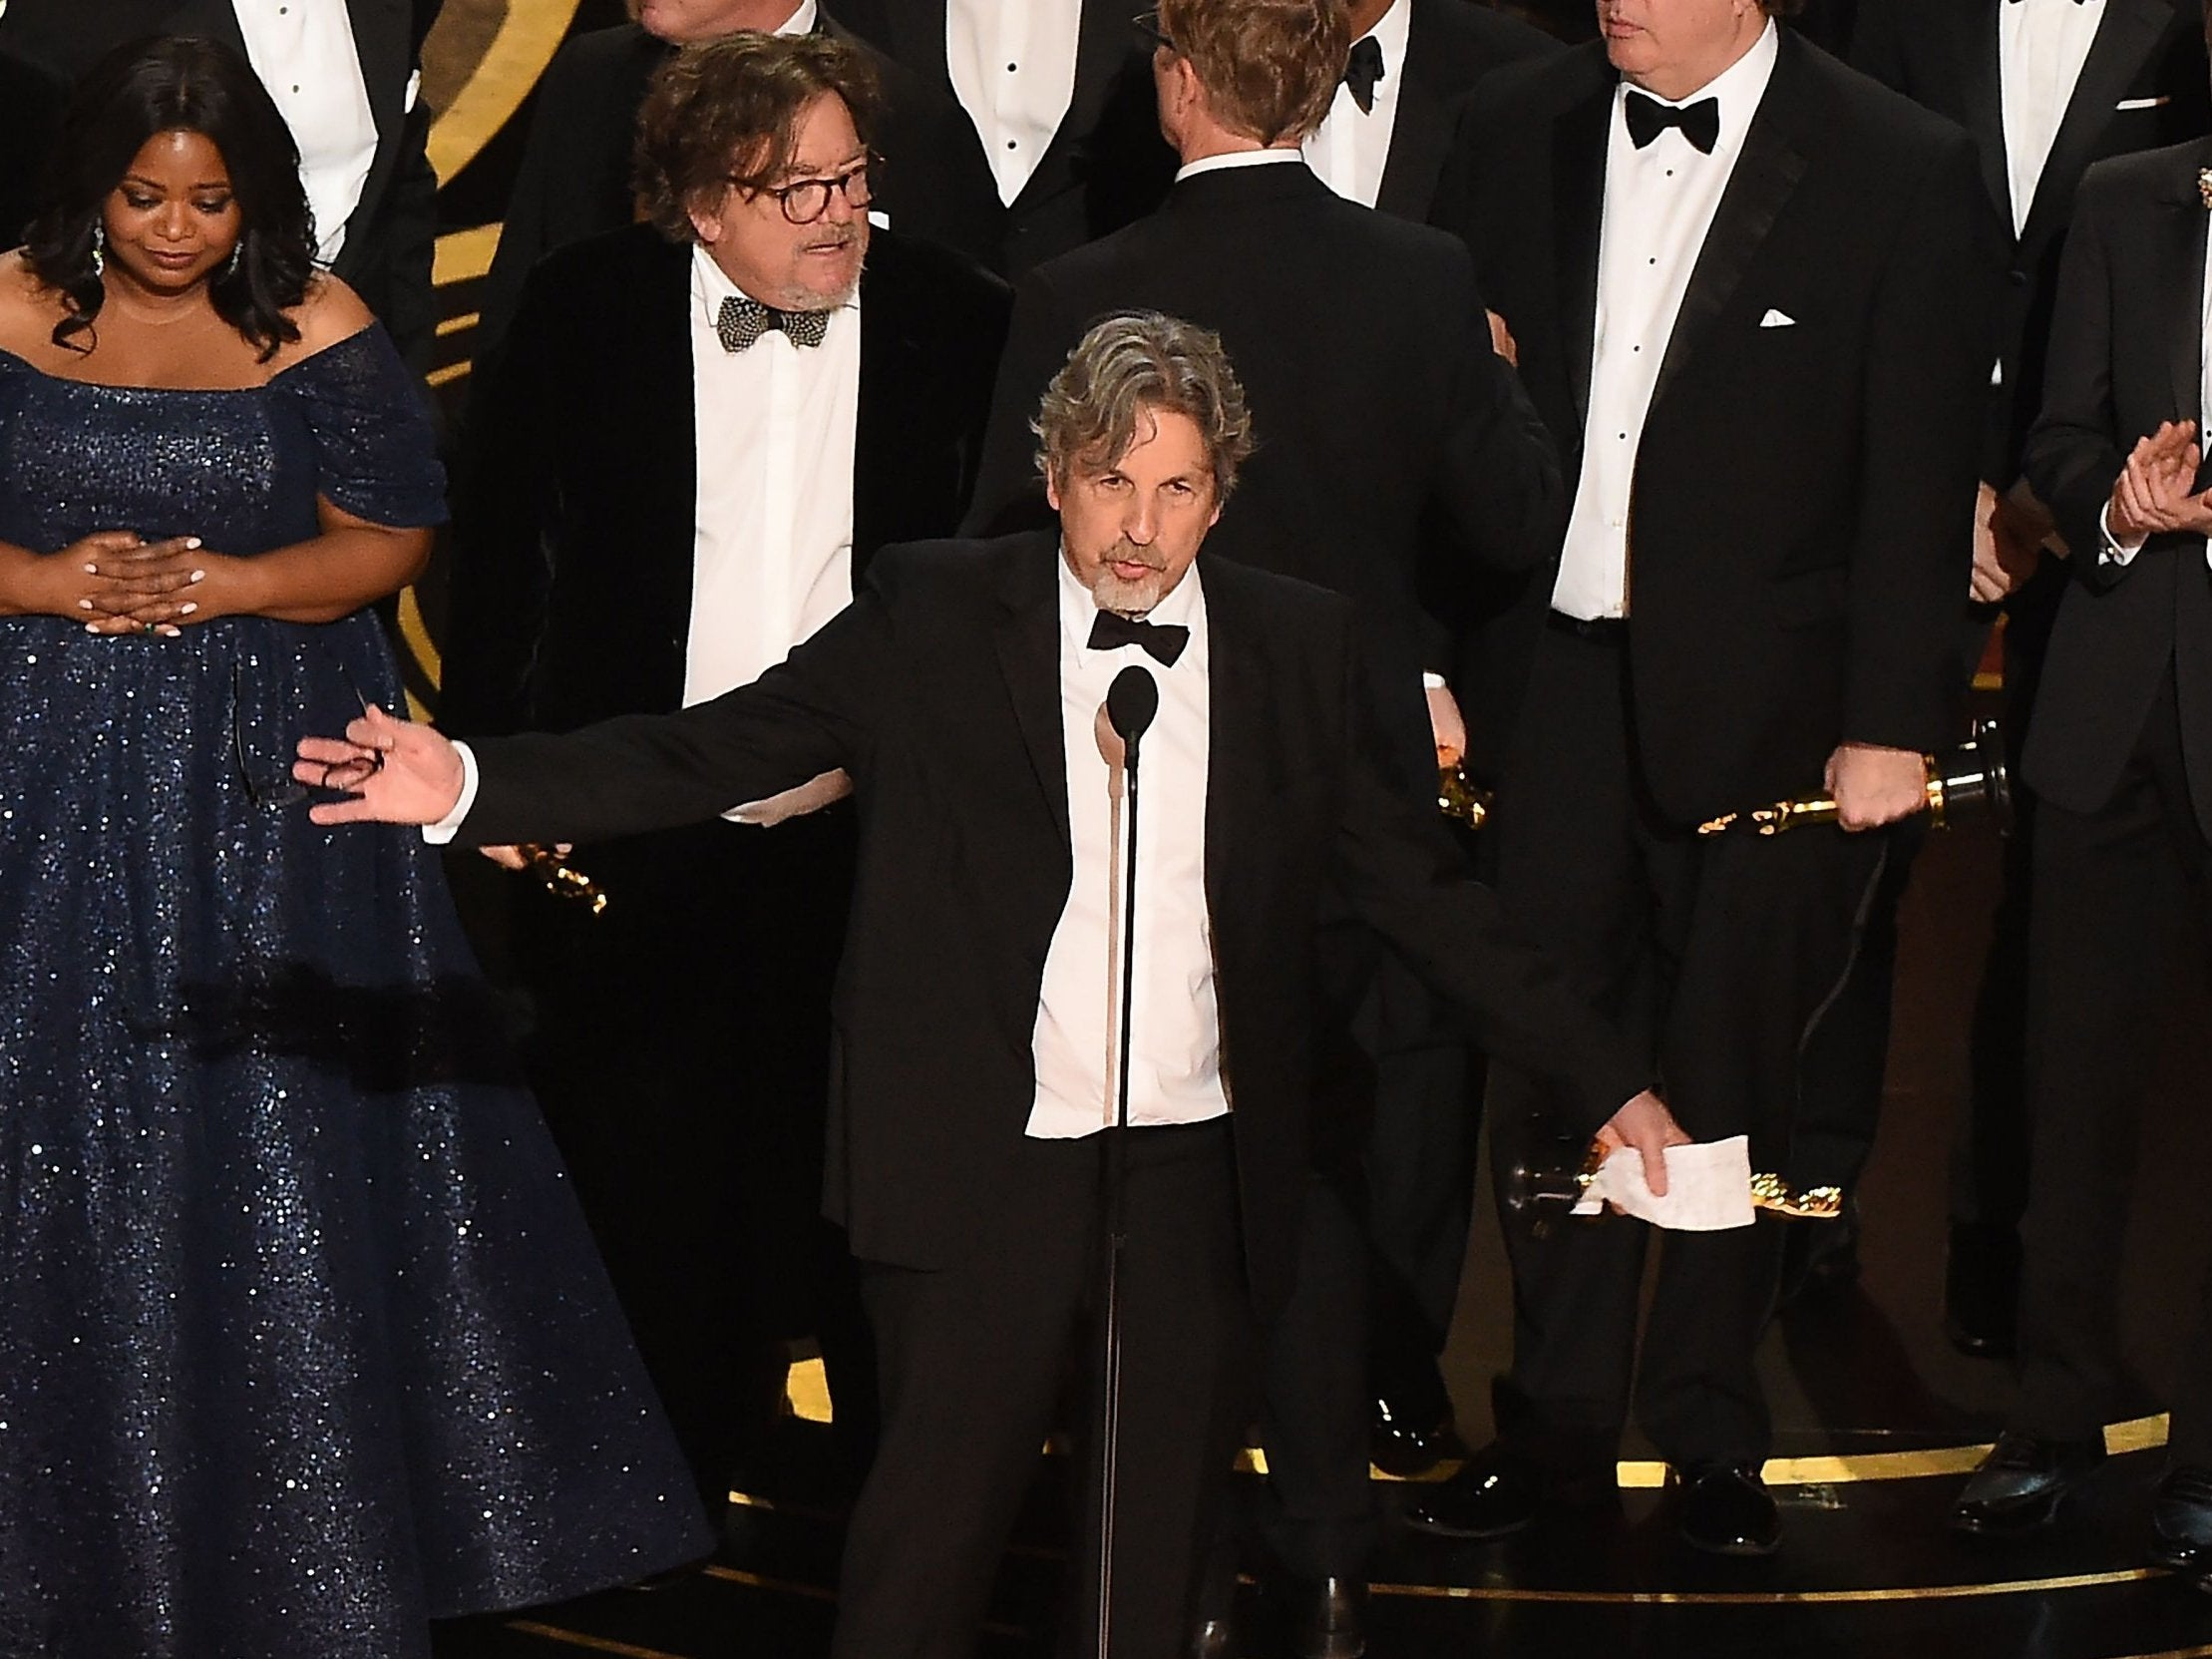 Oscars 2019: Five talking points, from Spike Lee storming